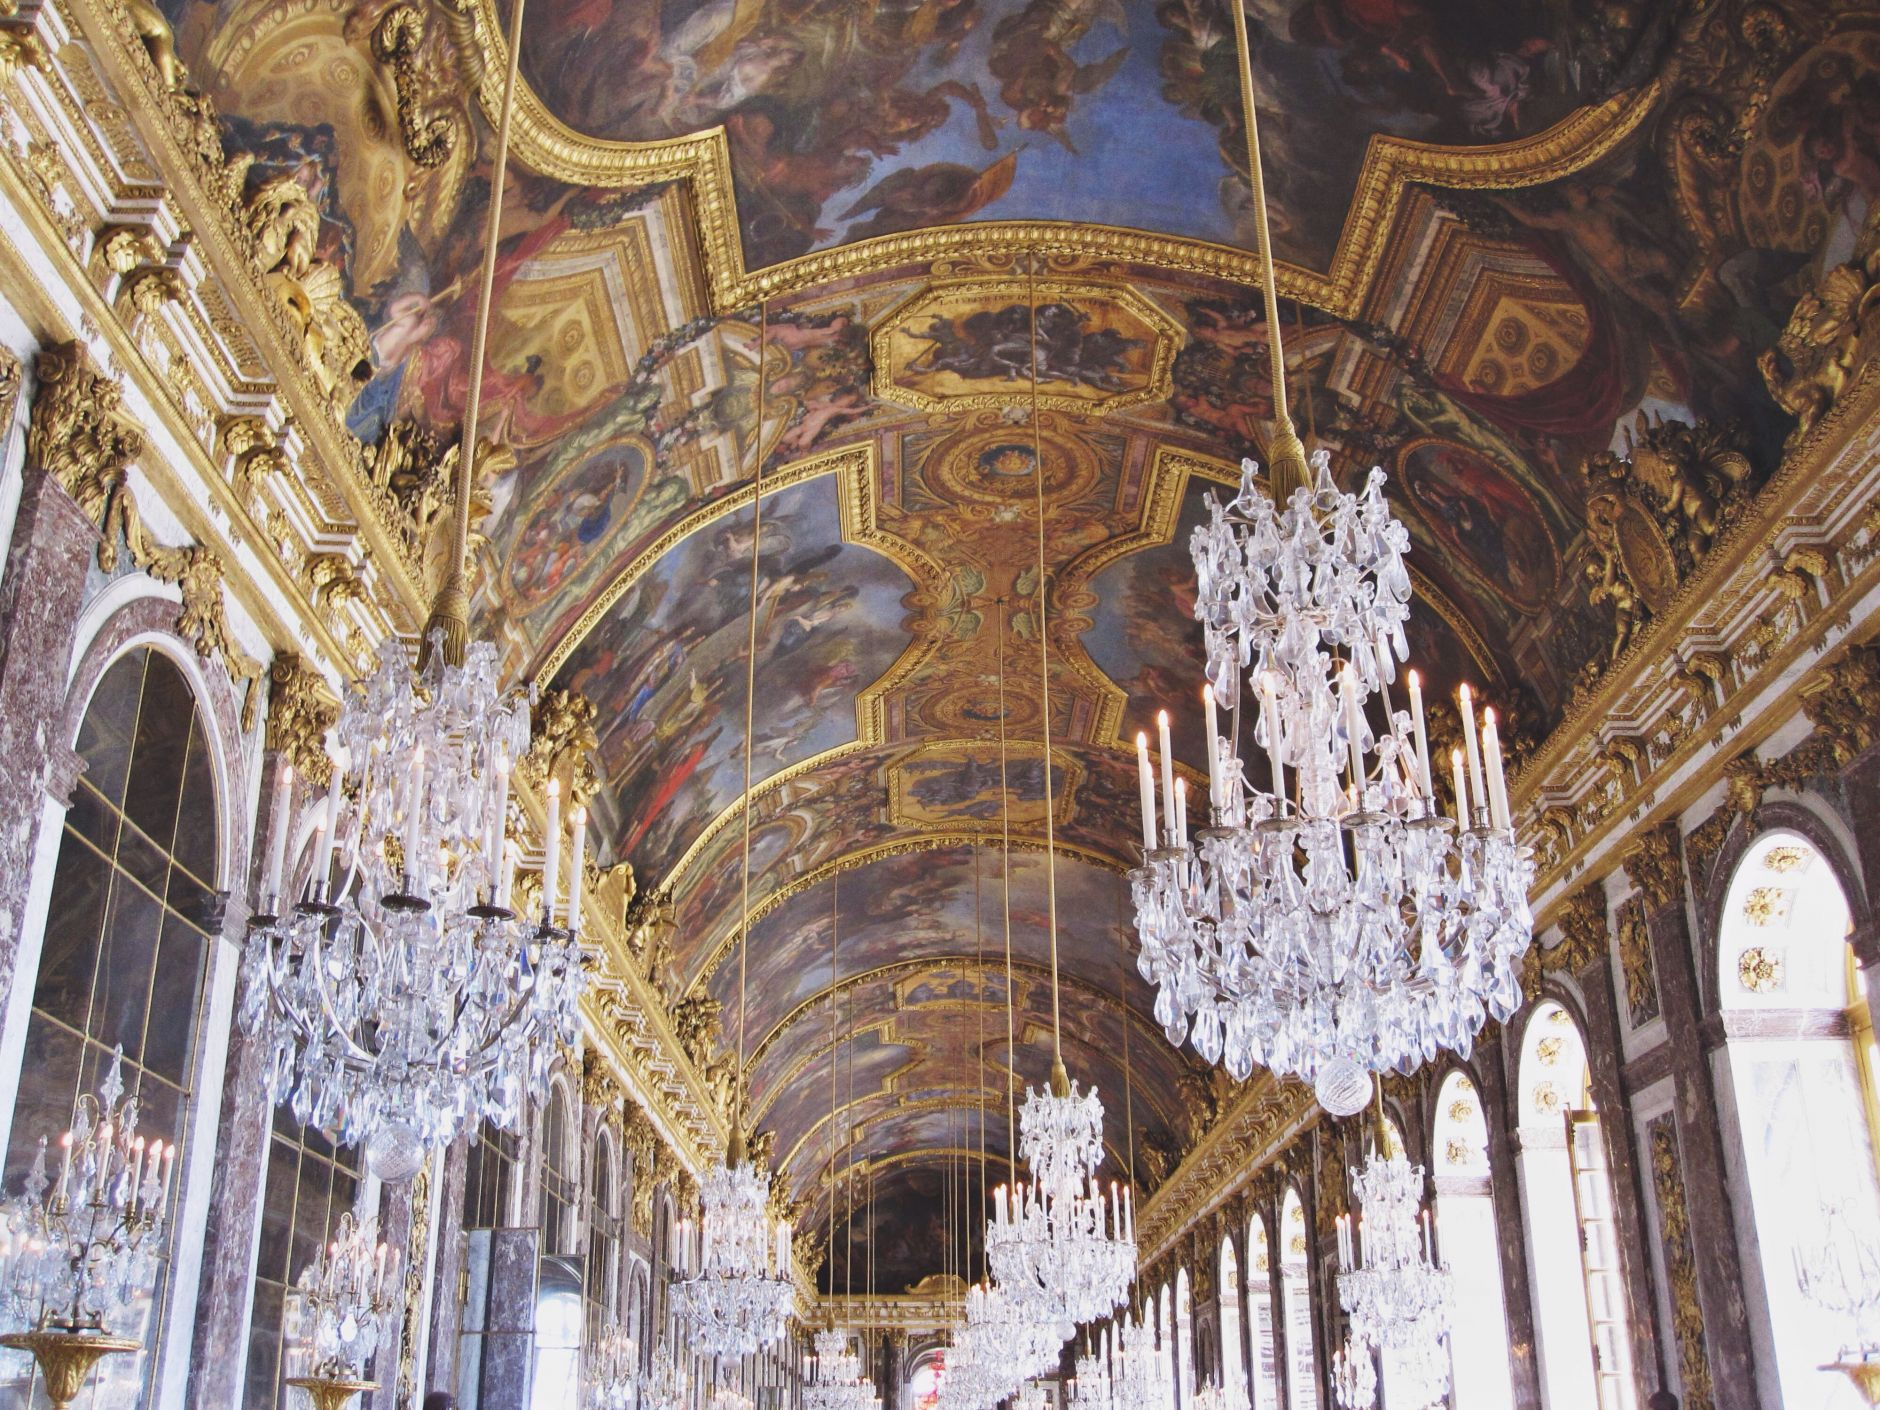 The-Mirror-Hall-at-Château-de-Versailles-Paris-Disic-Couture-01922